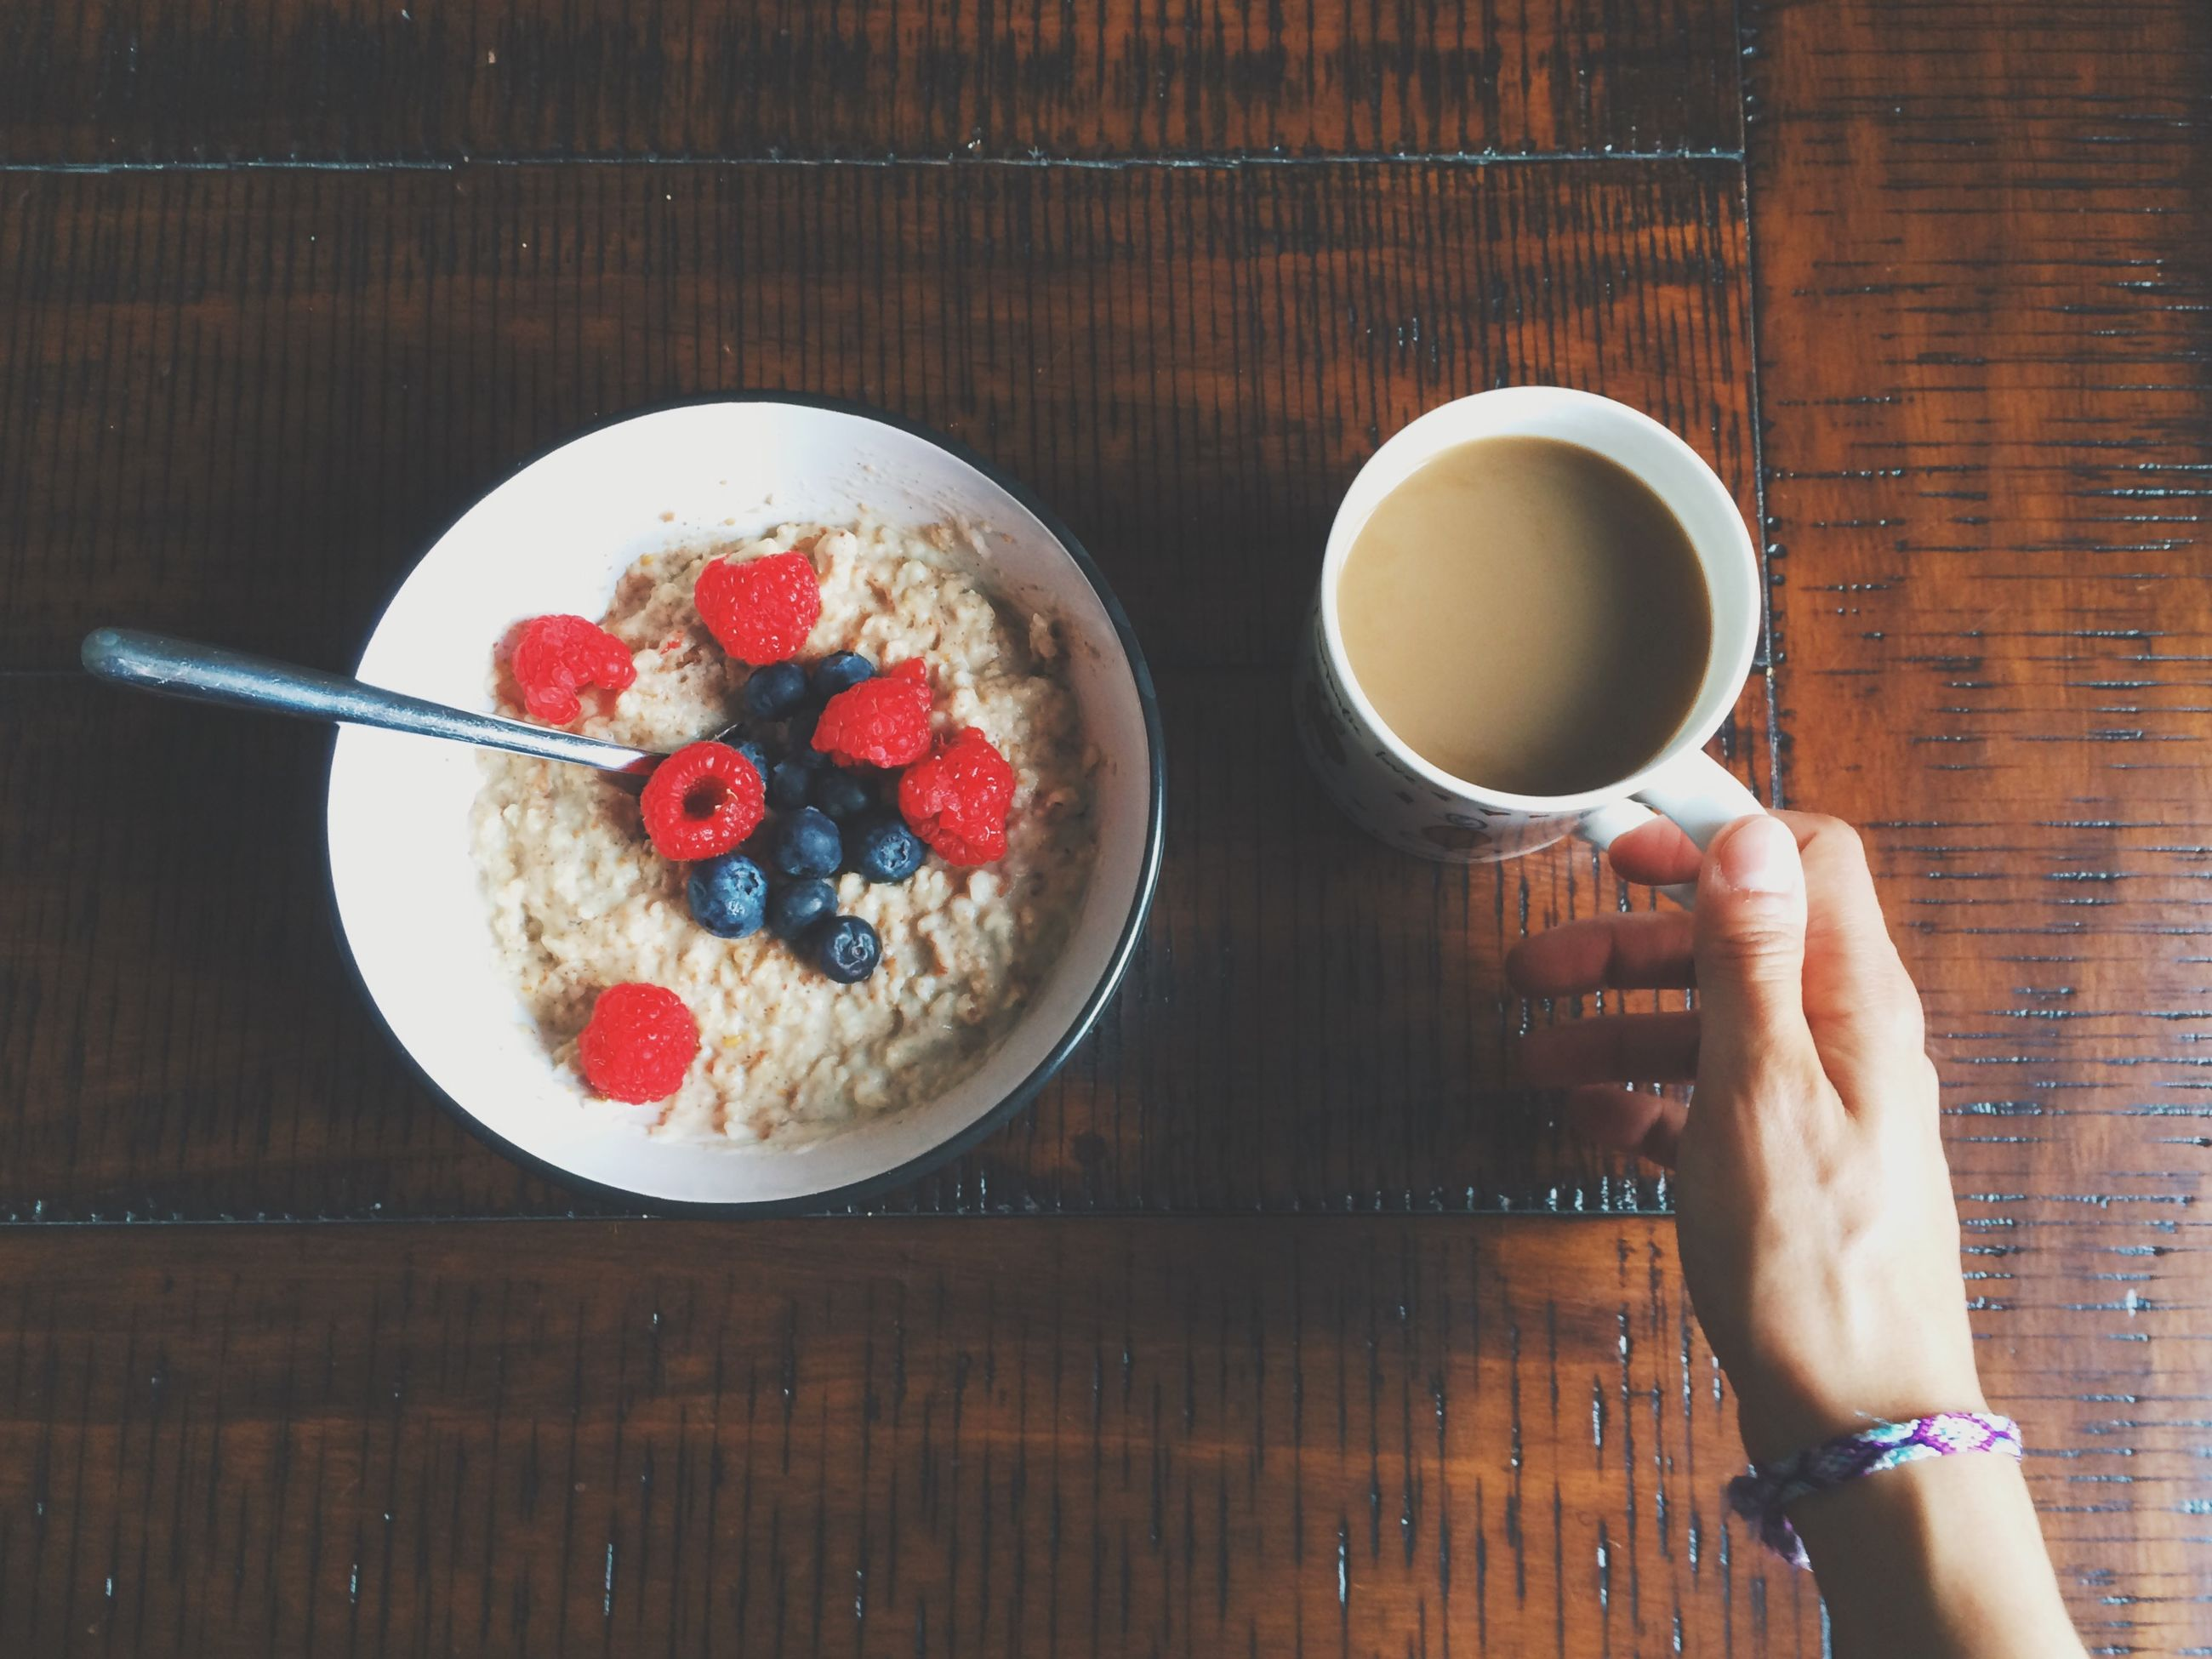 food and drink, freshness, person, food, holding, indoors, table, drink, refreshment, lifestyles, part of, coffee cup, fruit, healthy eating, sweet food, personal perspective